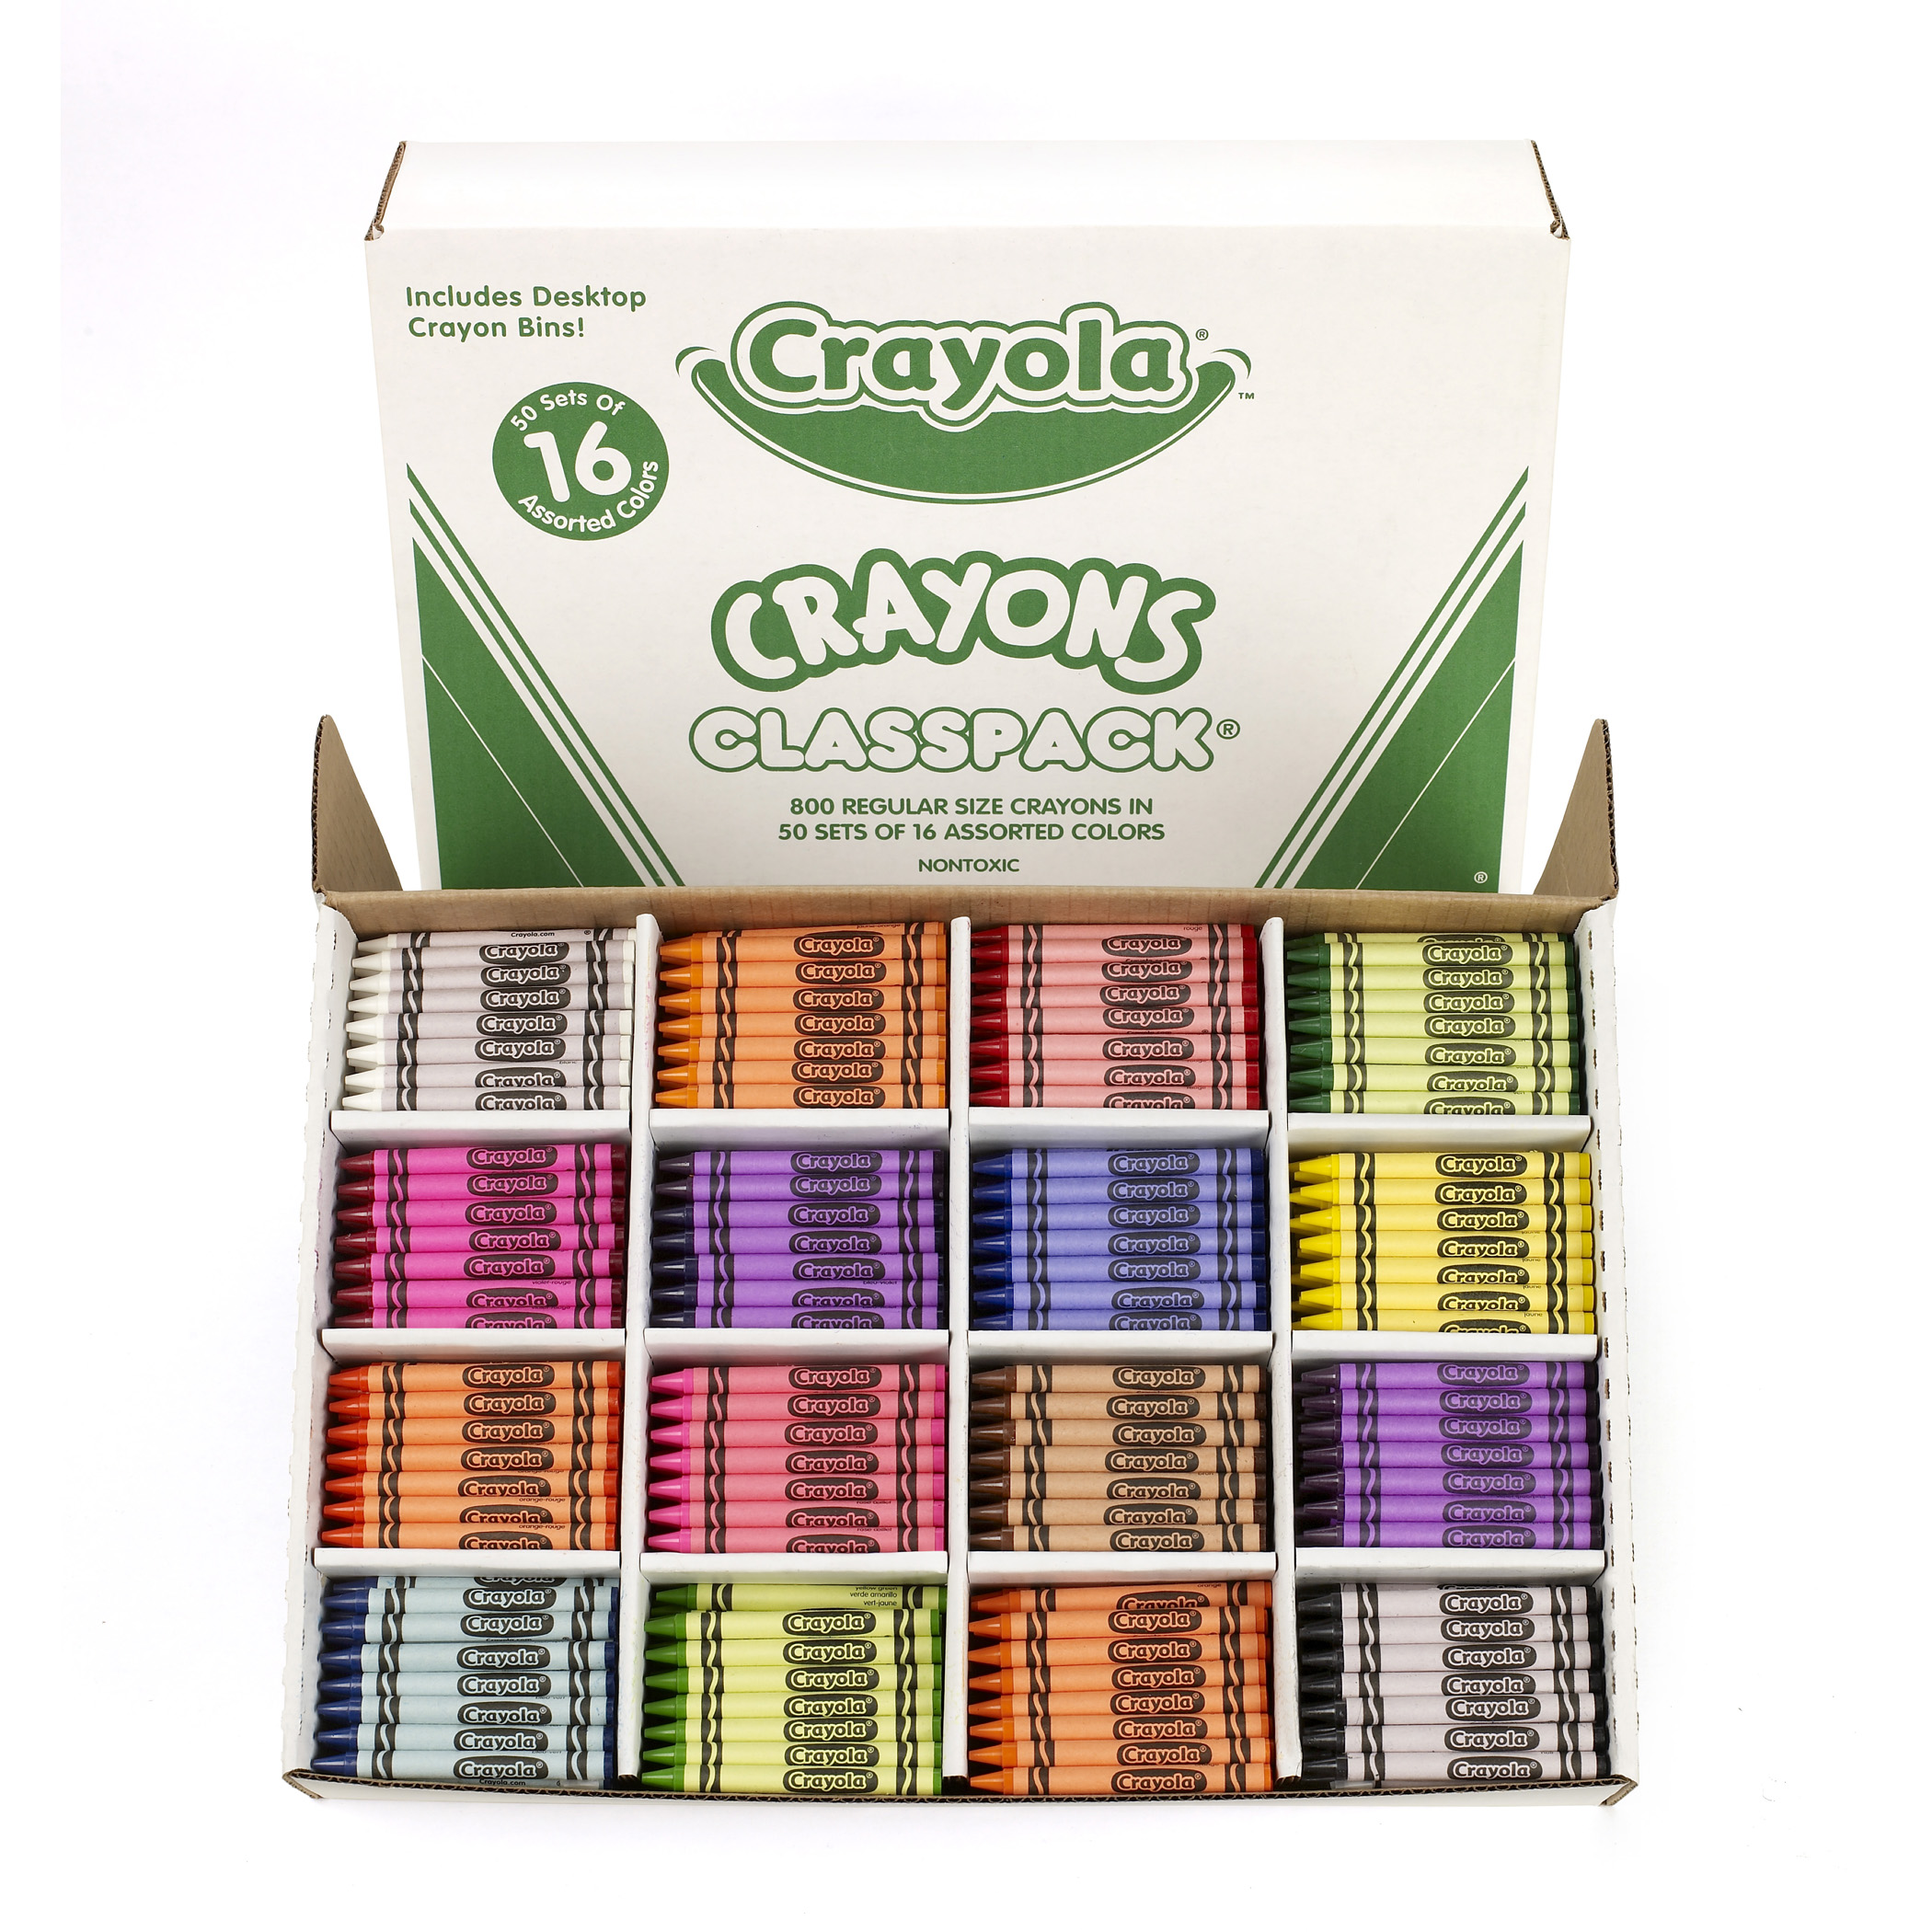 Crayola Crayon Classpack, 16 Colors, Pack of 800